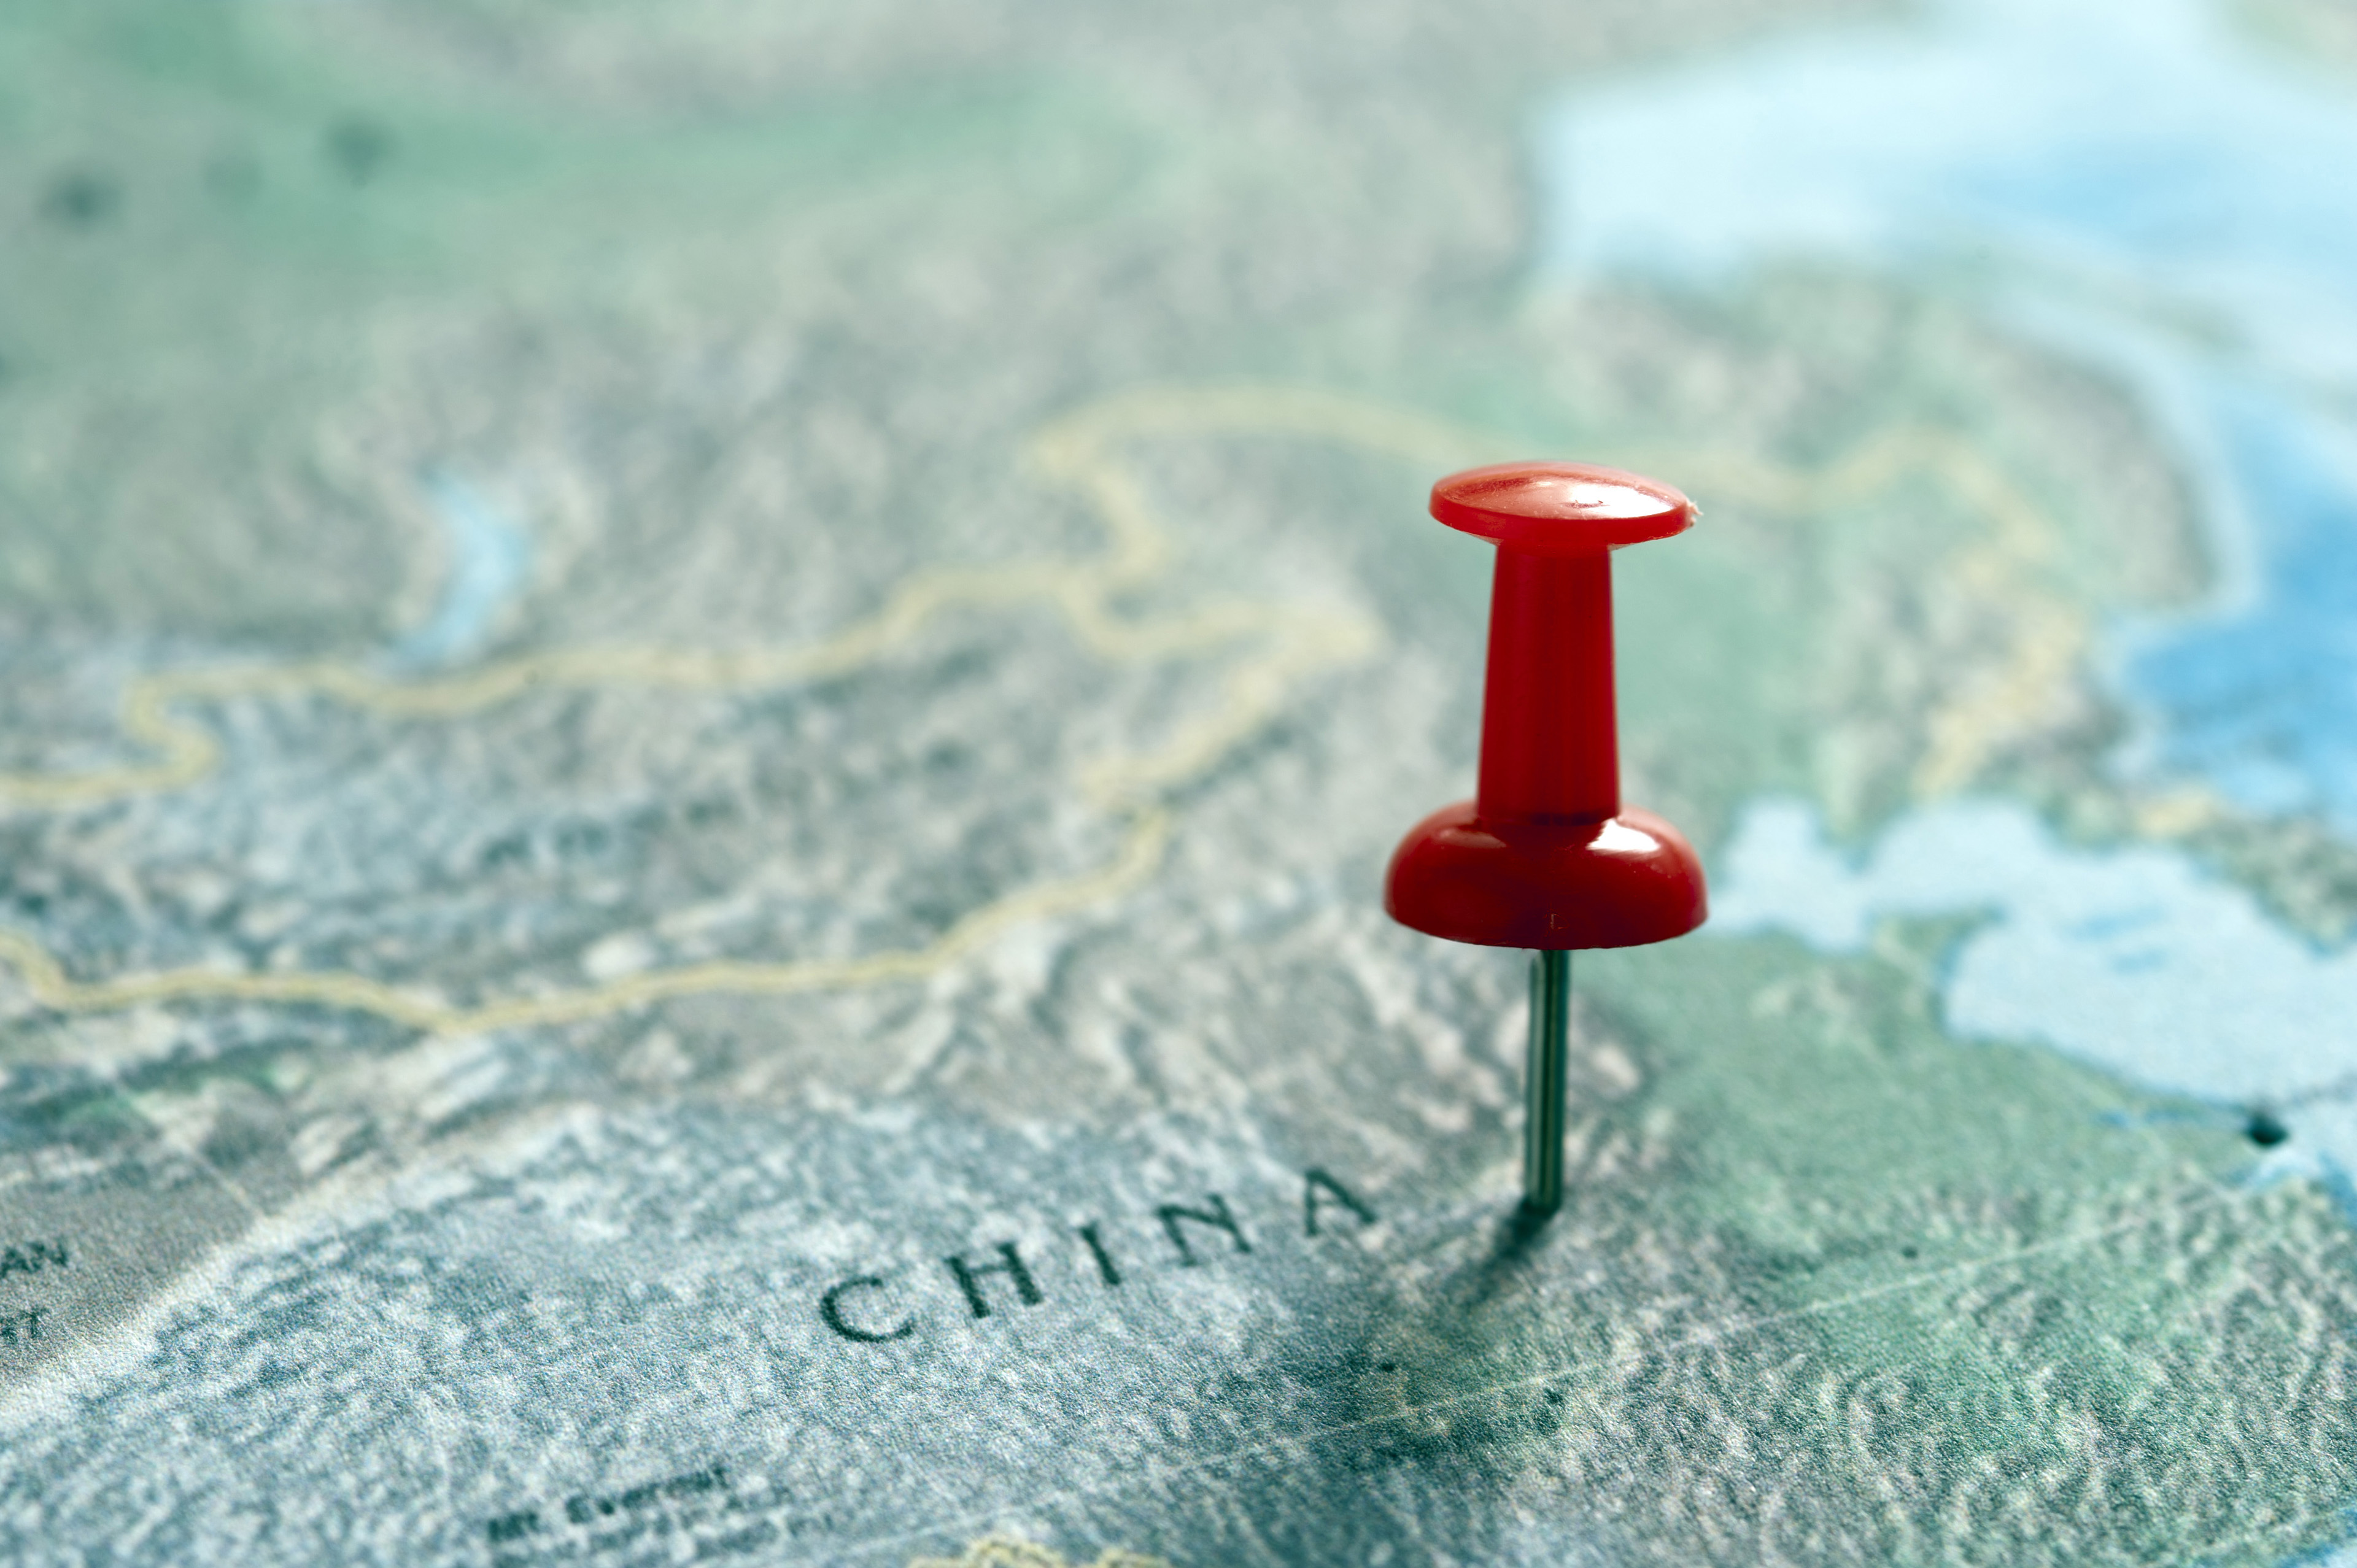 Image of Red Thumb Tack Marking Location in Map of China – Travel Map Marker